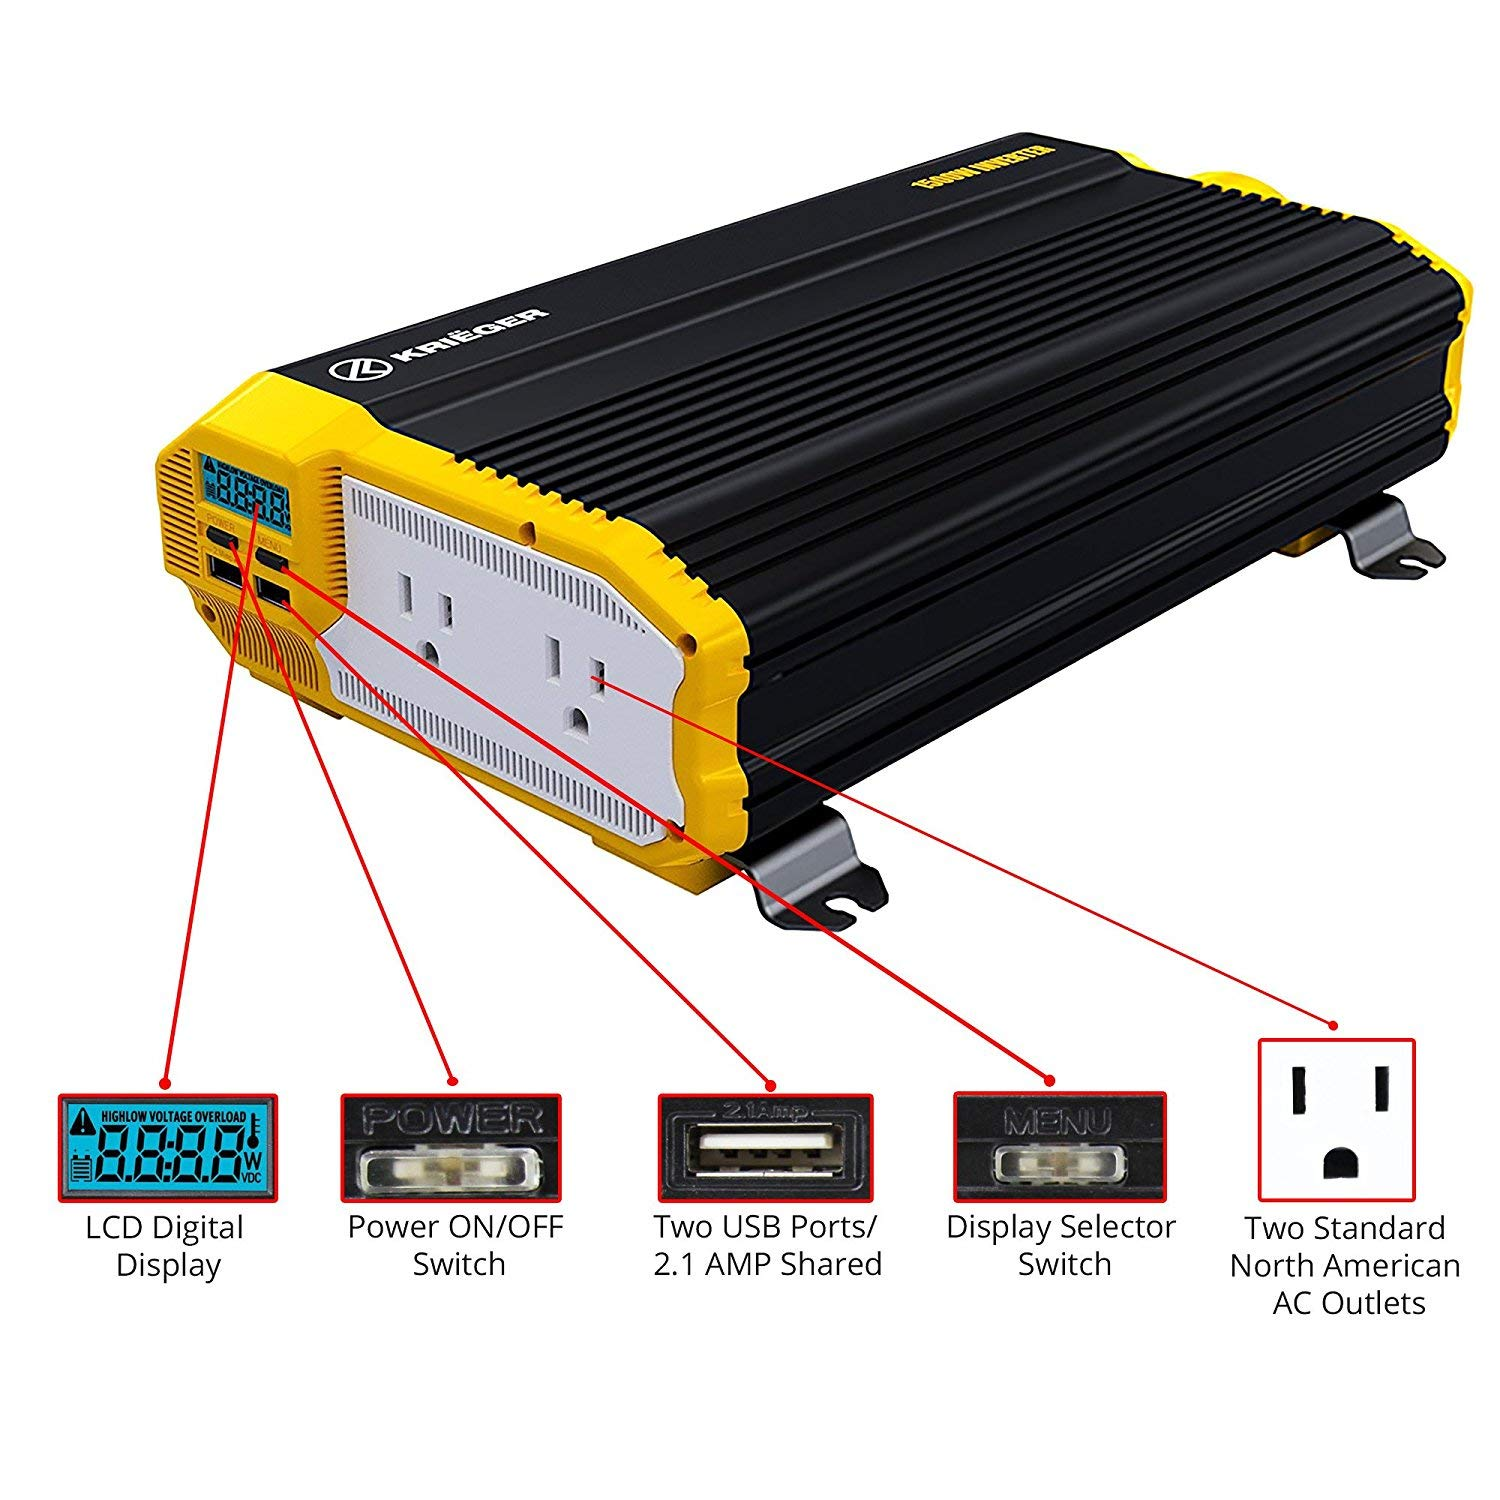 KRIËGER 2000 Watt 12V Power Inverter, Dual 110V AC outlets, Installation kit Included, Back up Power Supply for Small appliances, MET Approved According to UL and CSA Standards. by K KRIËGER (Image #2)